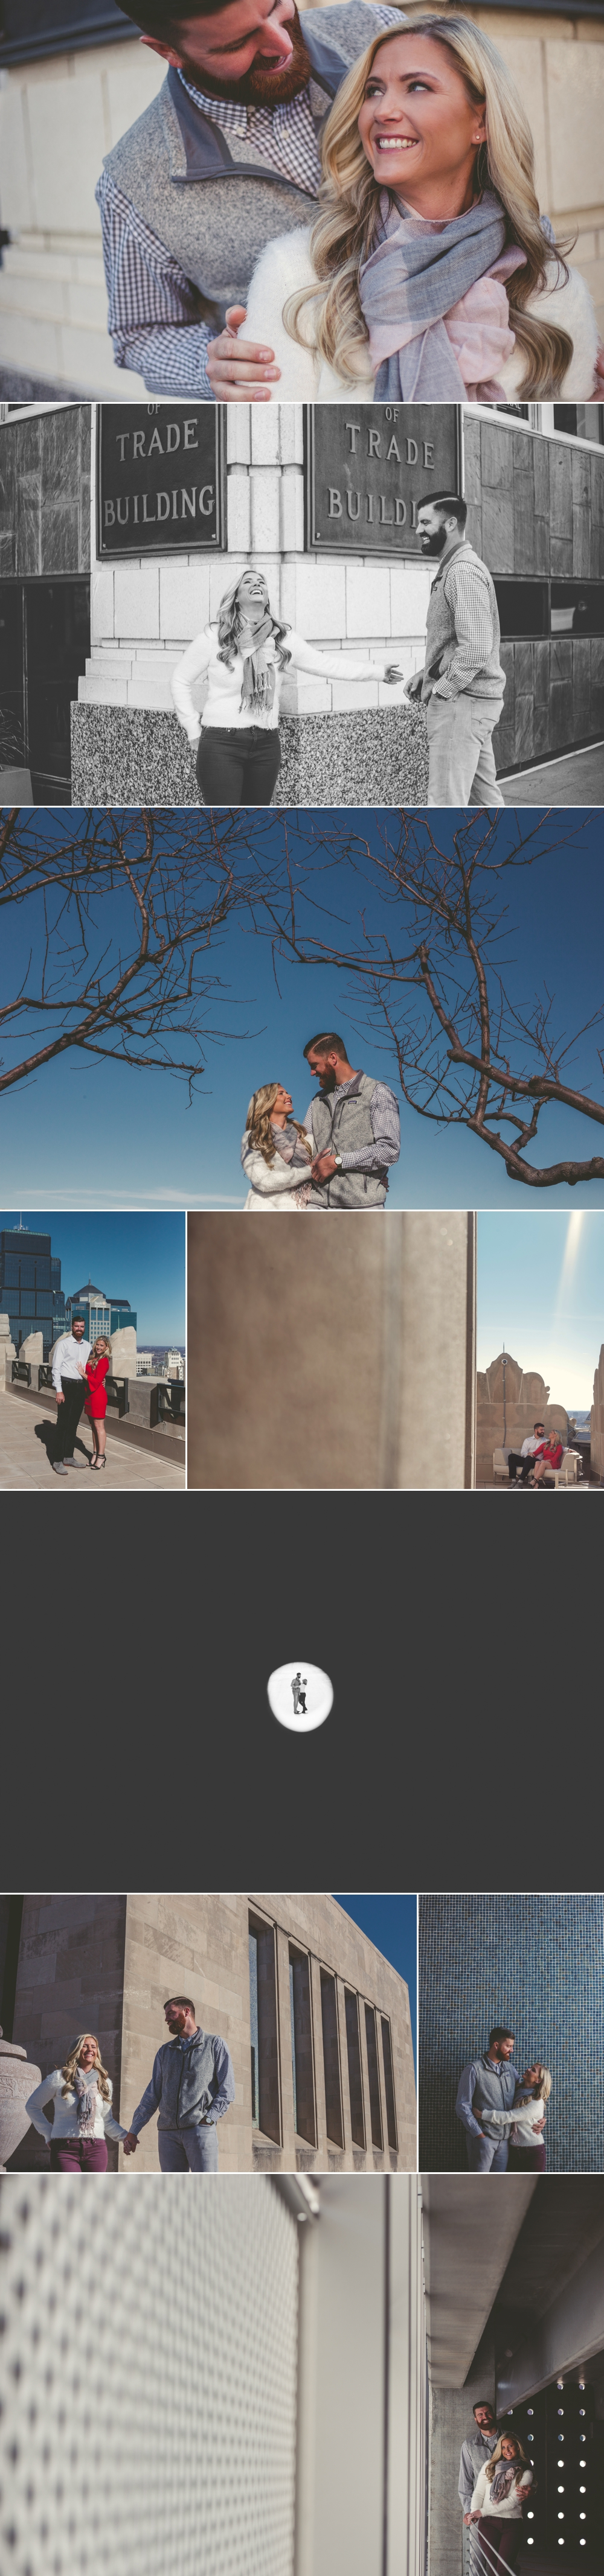 jason_domingues_photography_best_kansas_ city_wedding_photographer_kc_weddings_engagment_session_downtown_0001.JPG